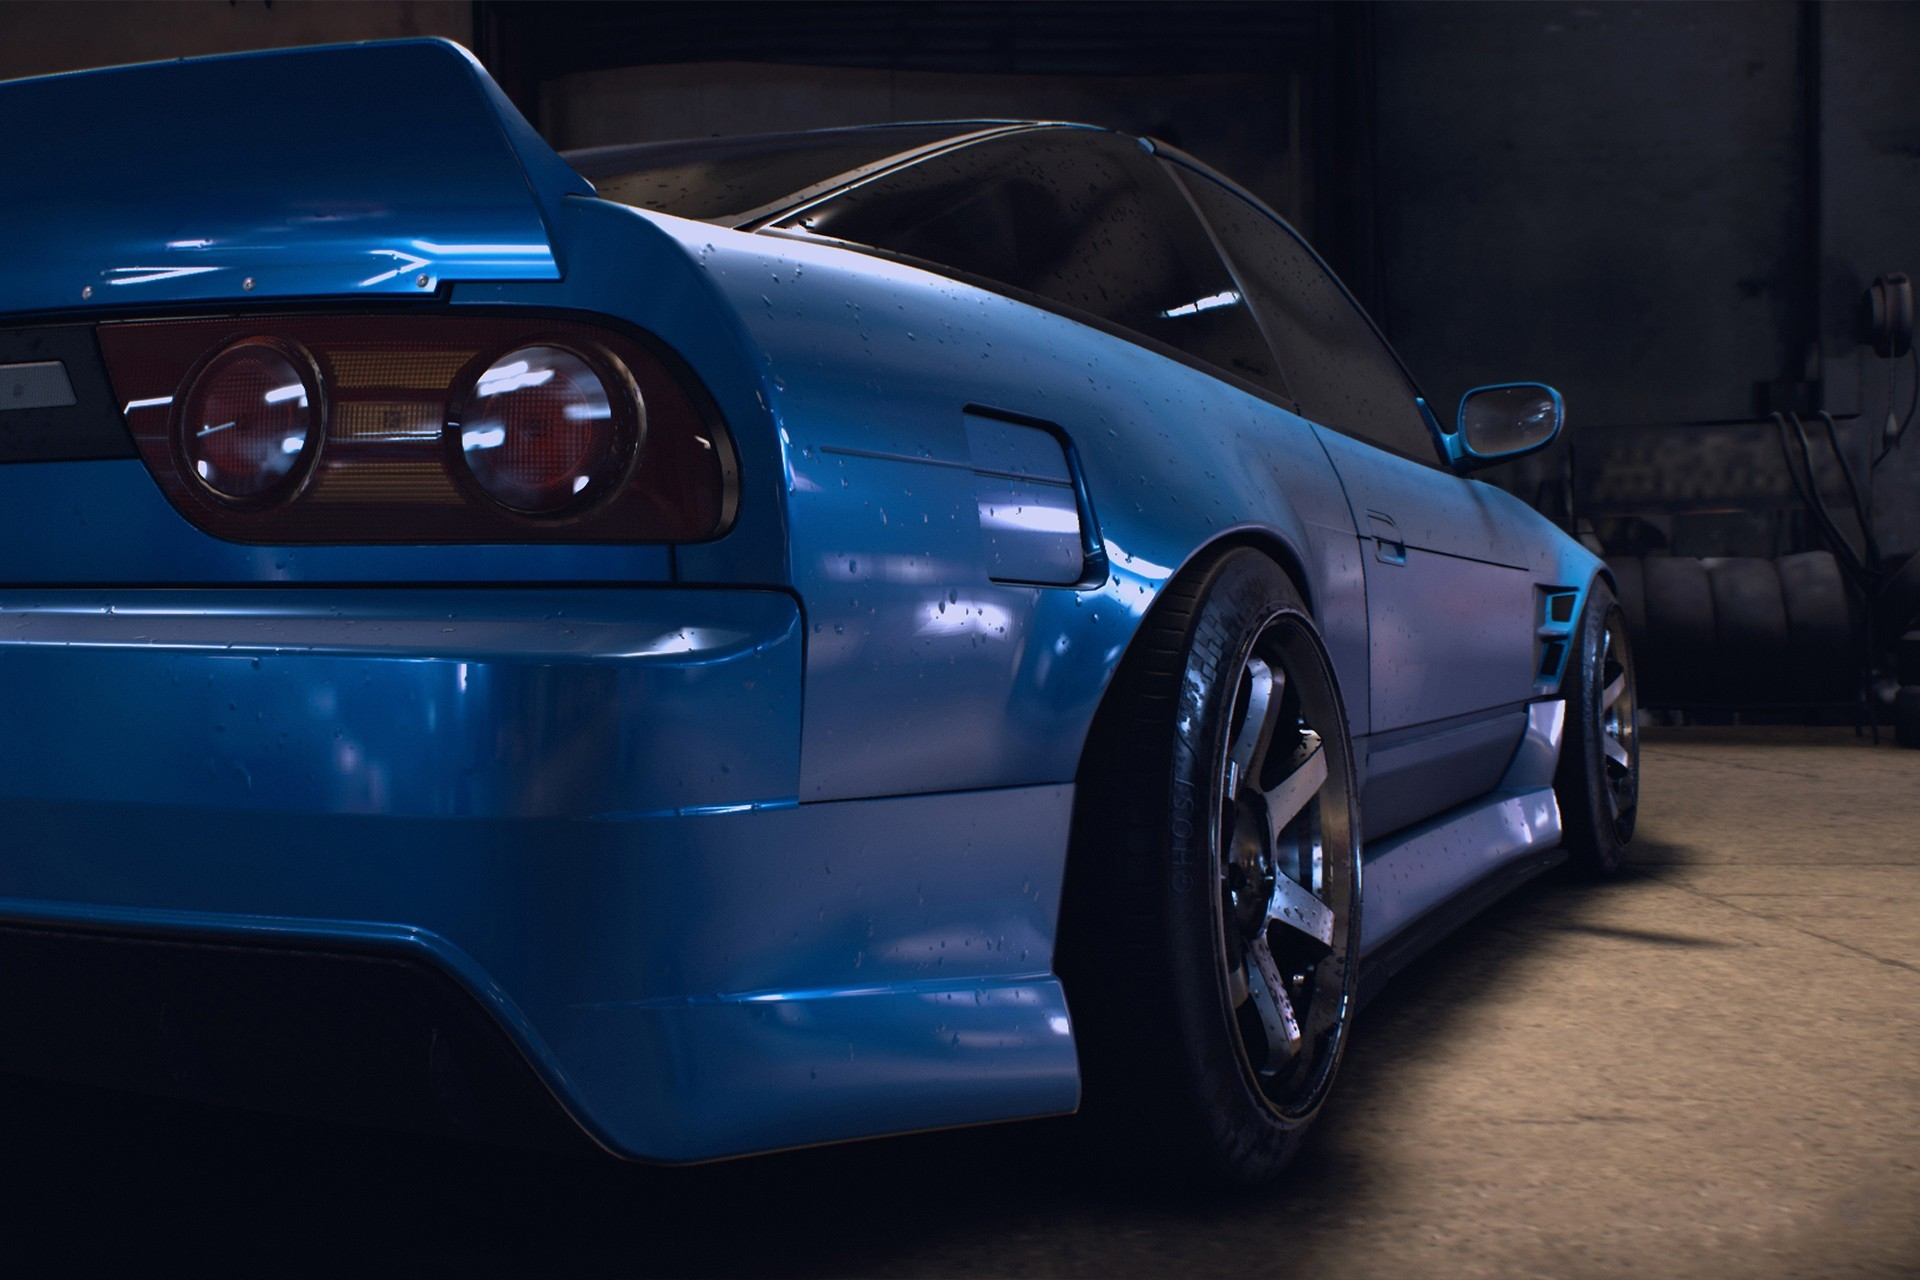 Need for Speed, 2015, Video Games, Racing, Car, Nissan, 180